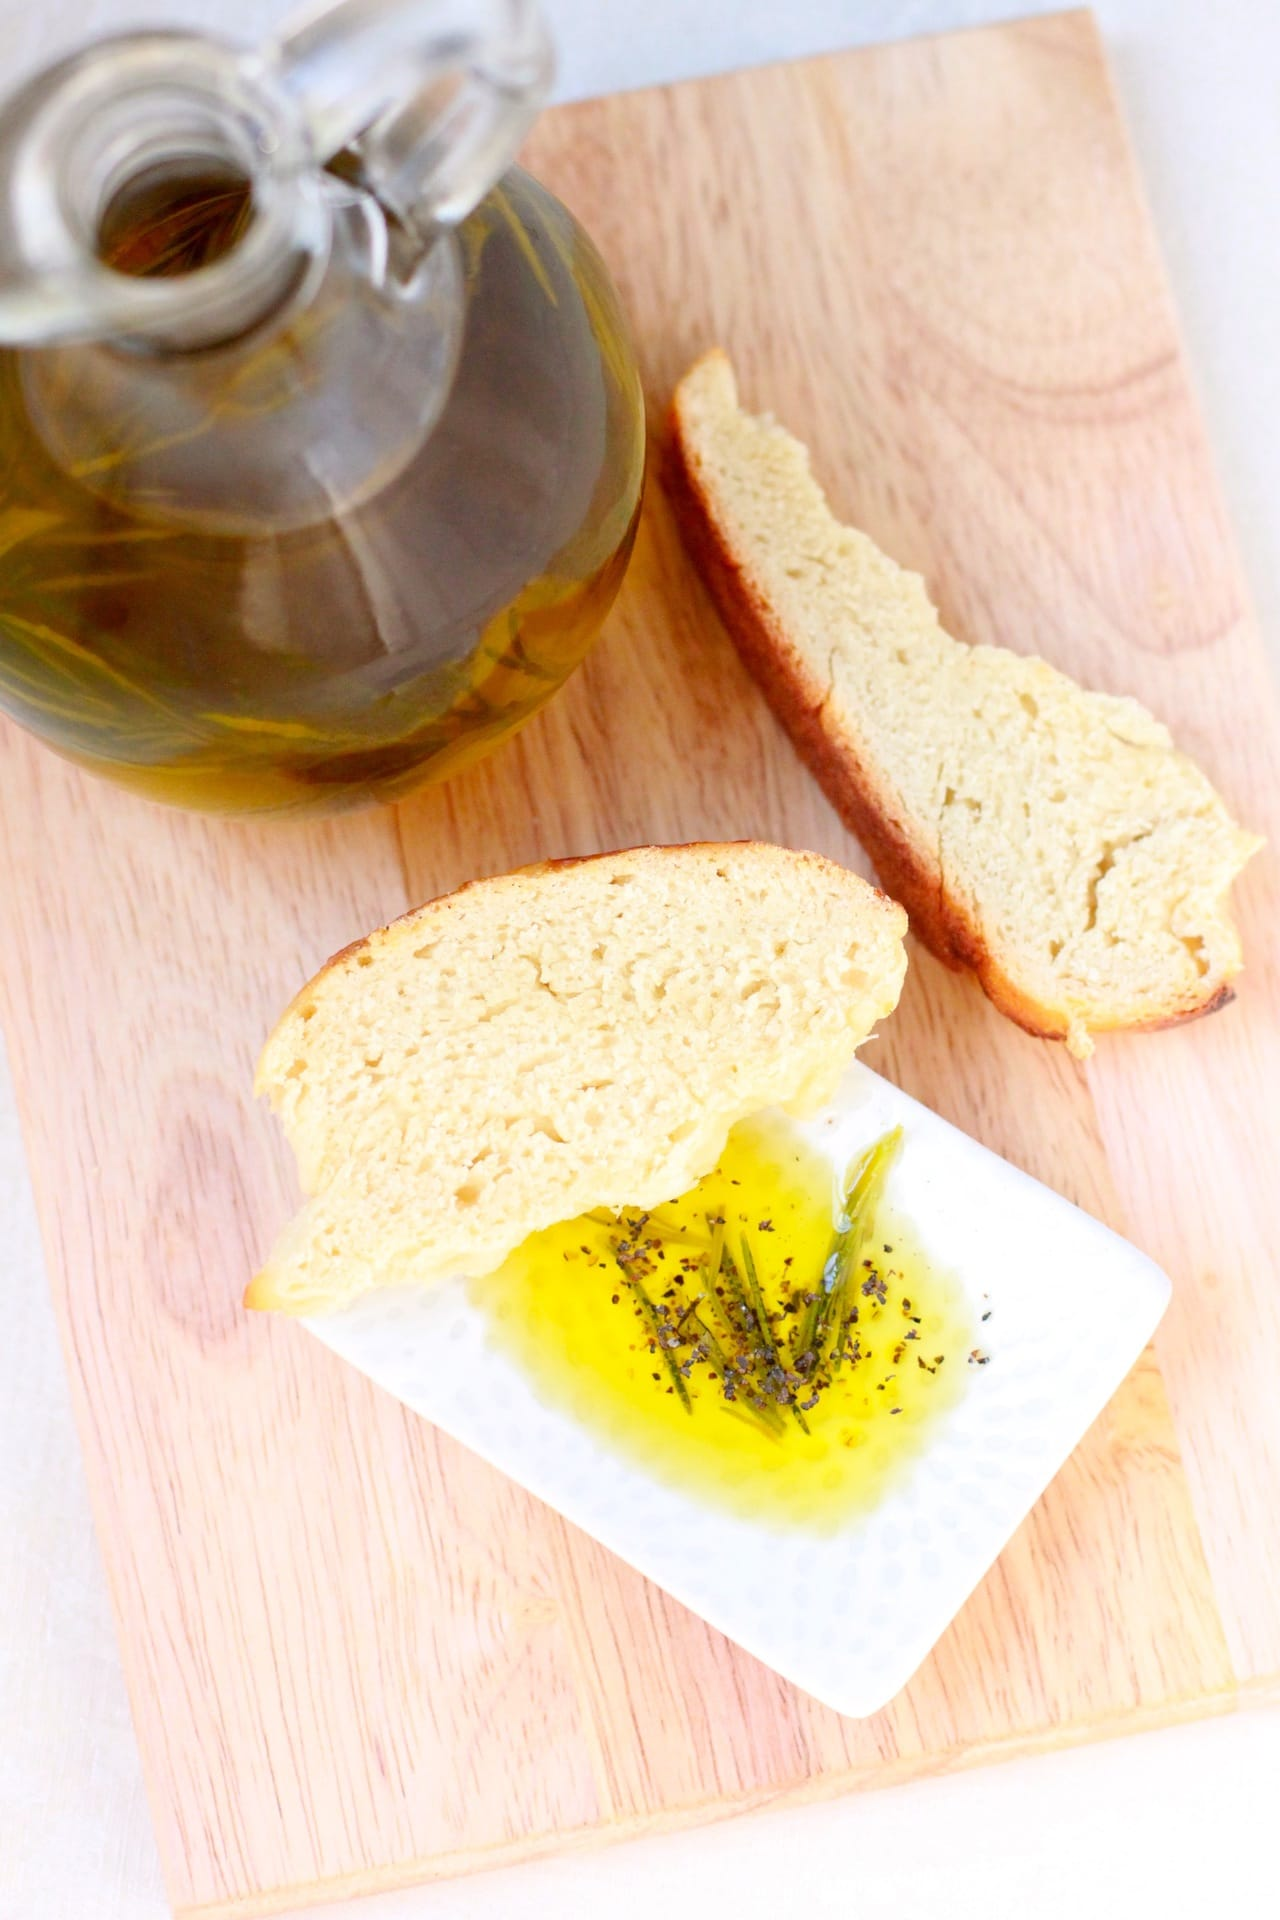 Rosemary and Garlic Infused Olive Oil 4